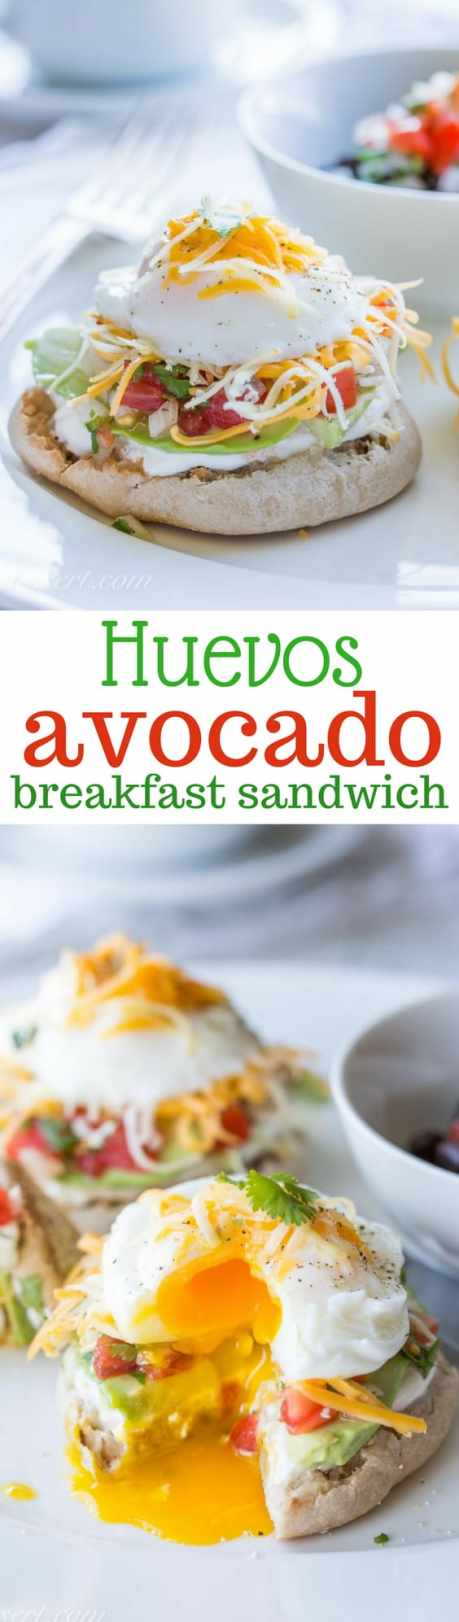 Huevos Avocado with Pico de Gallo - a terrific breakfast sandwich loaded with fresh pico de gallo, cheese, and perfect poached eggs. www.savingdessert.com